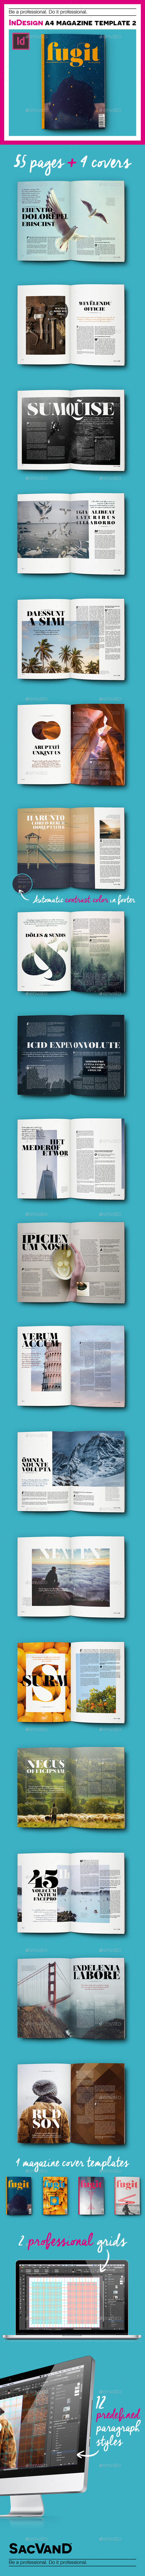 InDesign A4 Magazine Template 2 - Magazines Print Templates